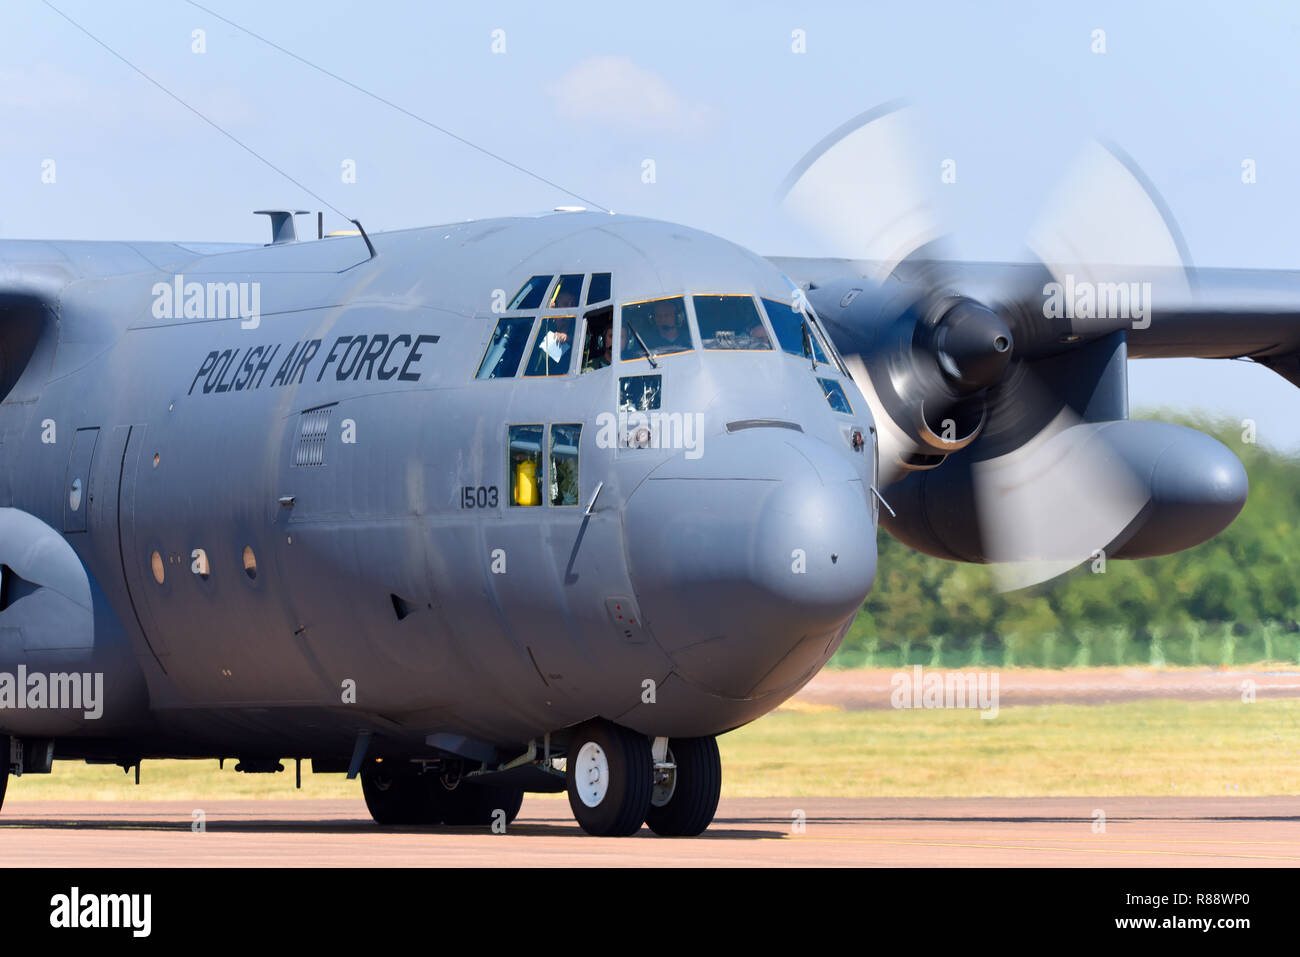 Polish Air Force Lockheed C-130 Hercules transport plane at the Royal International Air Tattoo, RIAT, RAF Fairford airshow. C-130E version Stock Photo